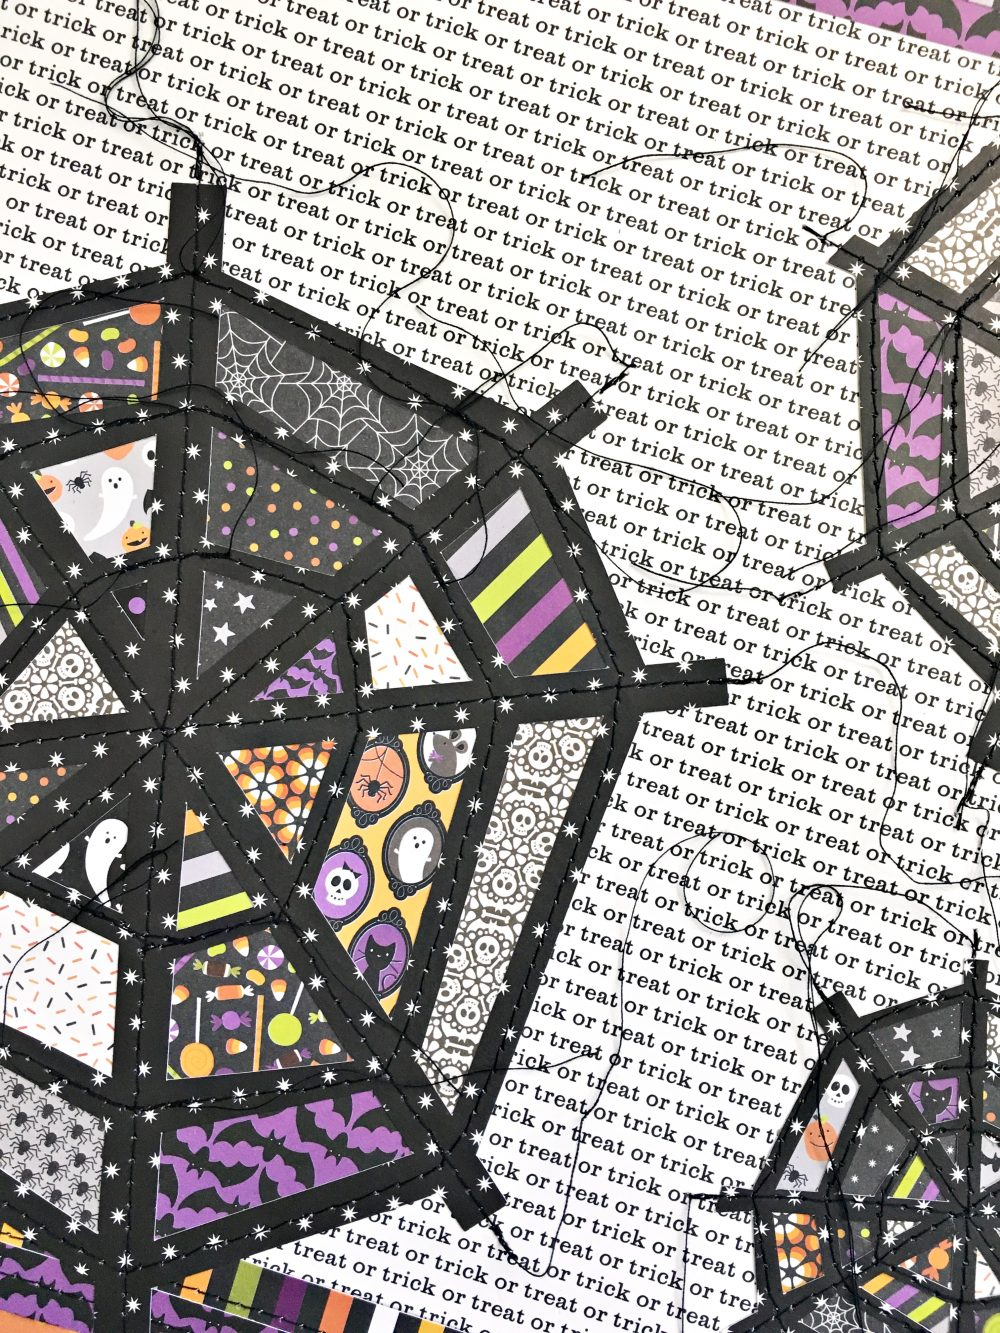 http://pebblesincblog.com/wp-content/uploads/2016/10/Stitched-Spiders-by-Heather-Leopard-e1477321399436.jpg